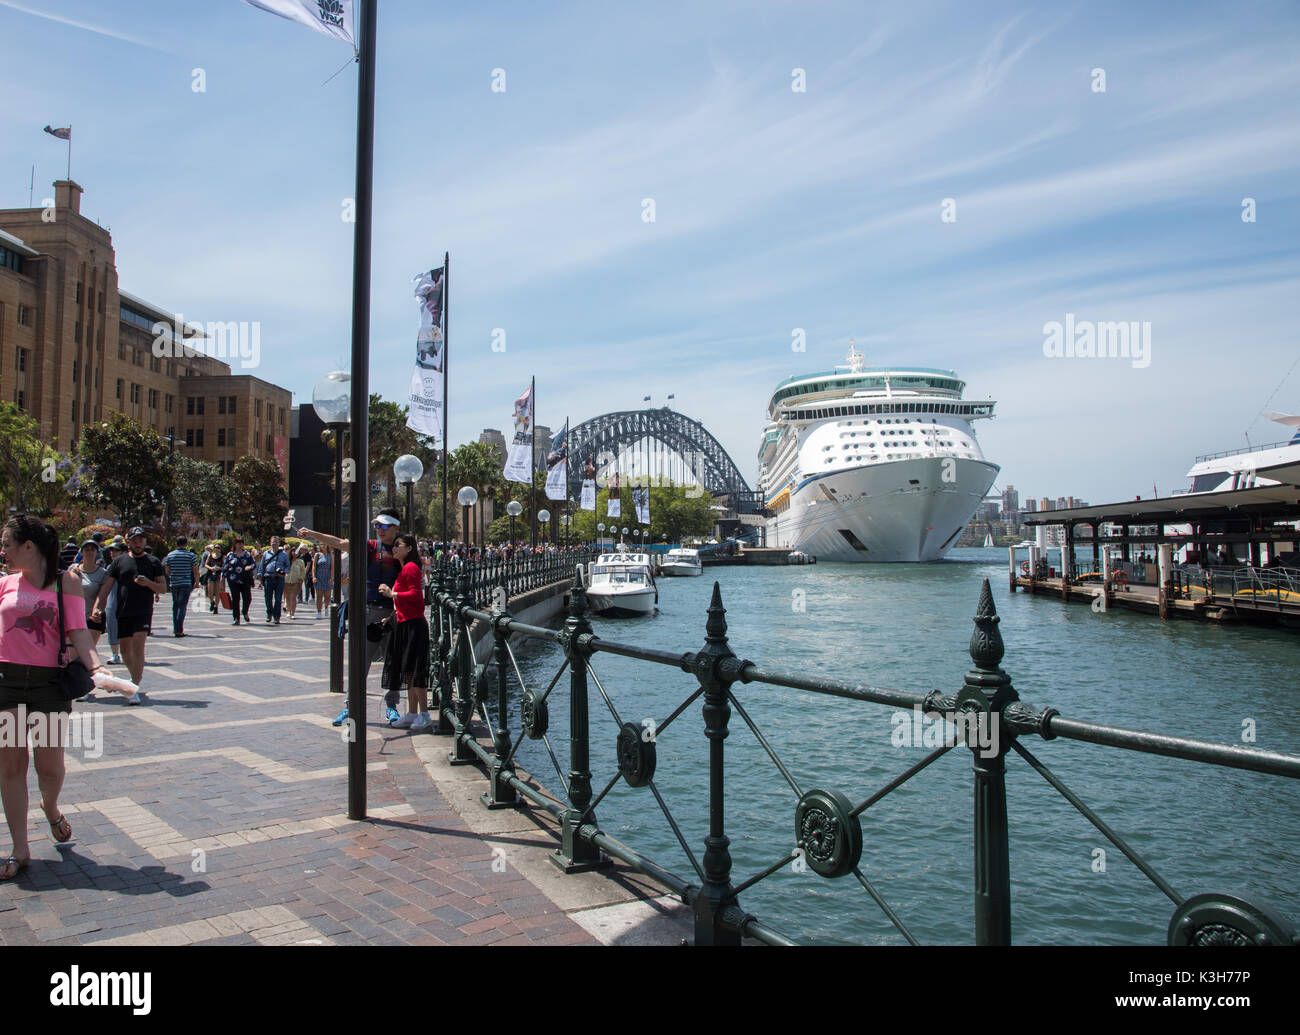 SYDNEY,NSW,AUSTRALIA-NOVEMBER 20,2016: Cruise Ship at the Overseas Passenger Terminal with tourists and waterfront views in Sydney, Australia - Stock Image